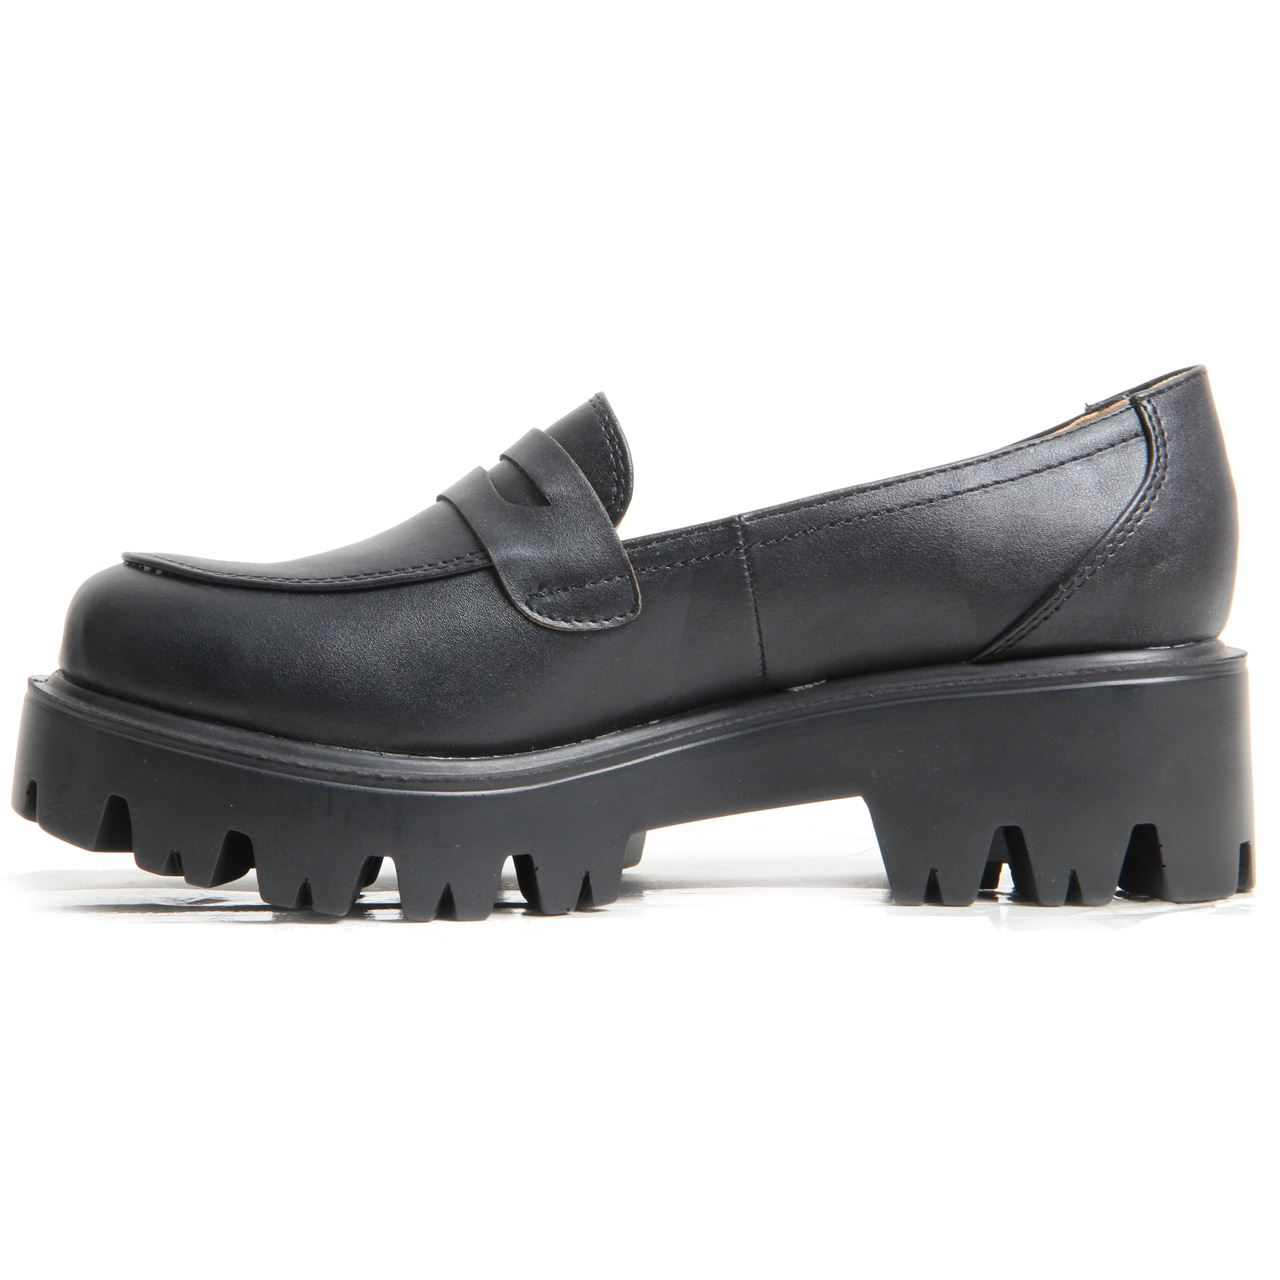 Women Ladies Cleated Chunky Platform Sole Flat Loafer Black Patent School Shoes.   EBay